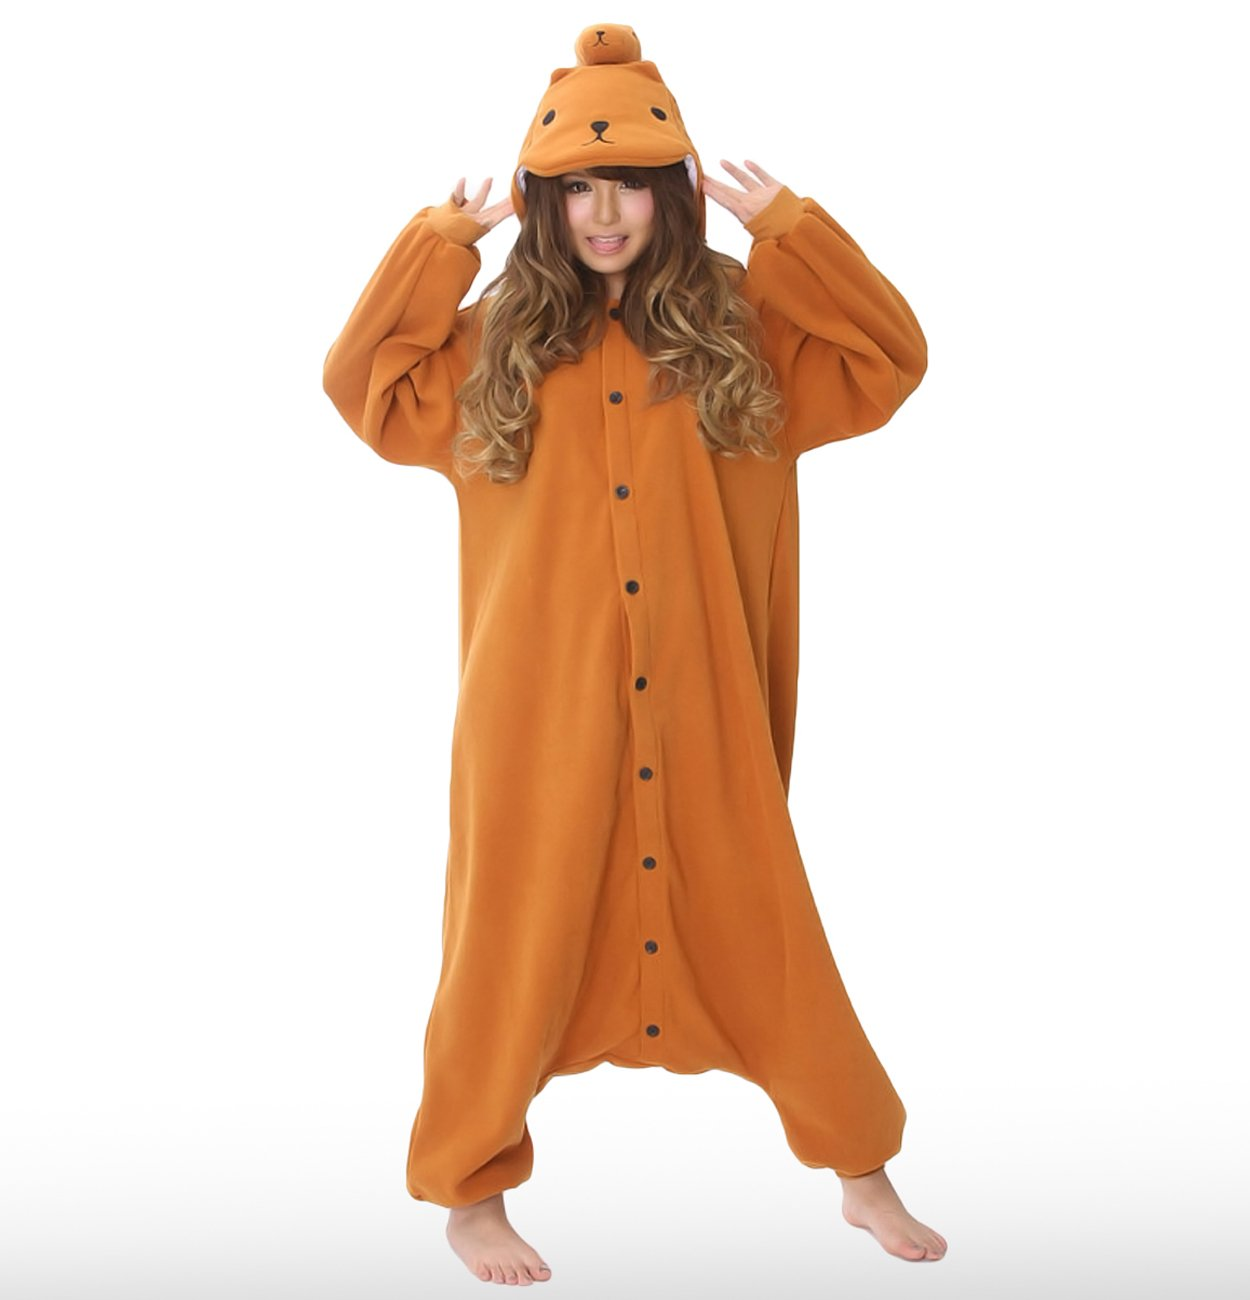 The Official Sazac Original Kigurumi Kapibara San Costume Kigurumi    Capybara Fancy Dress Cosplay Pajamas (japan import)  Amazon.ca  Toys   Games 453f50e069134